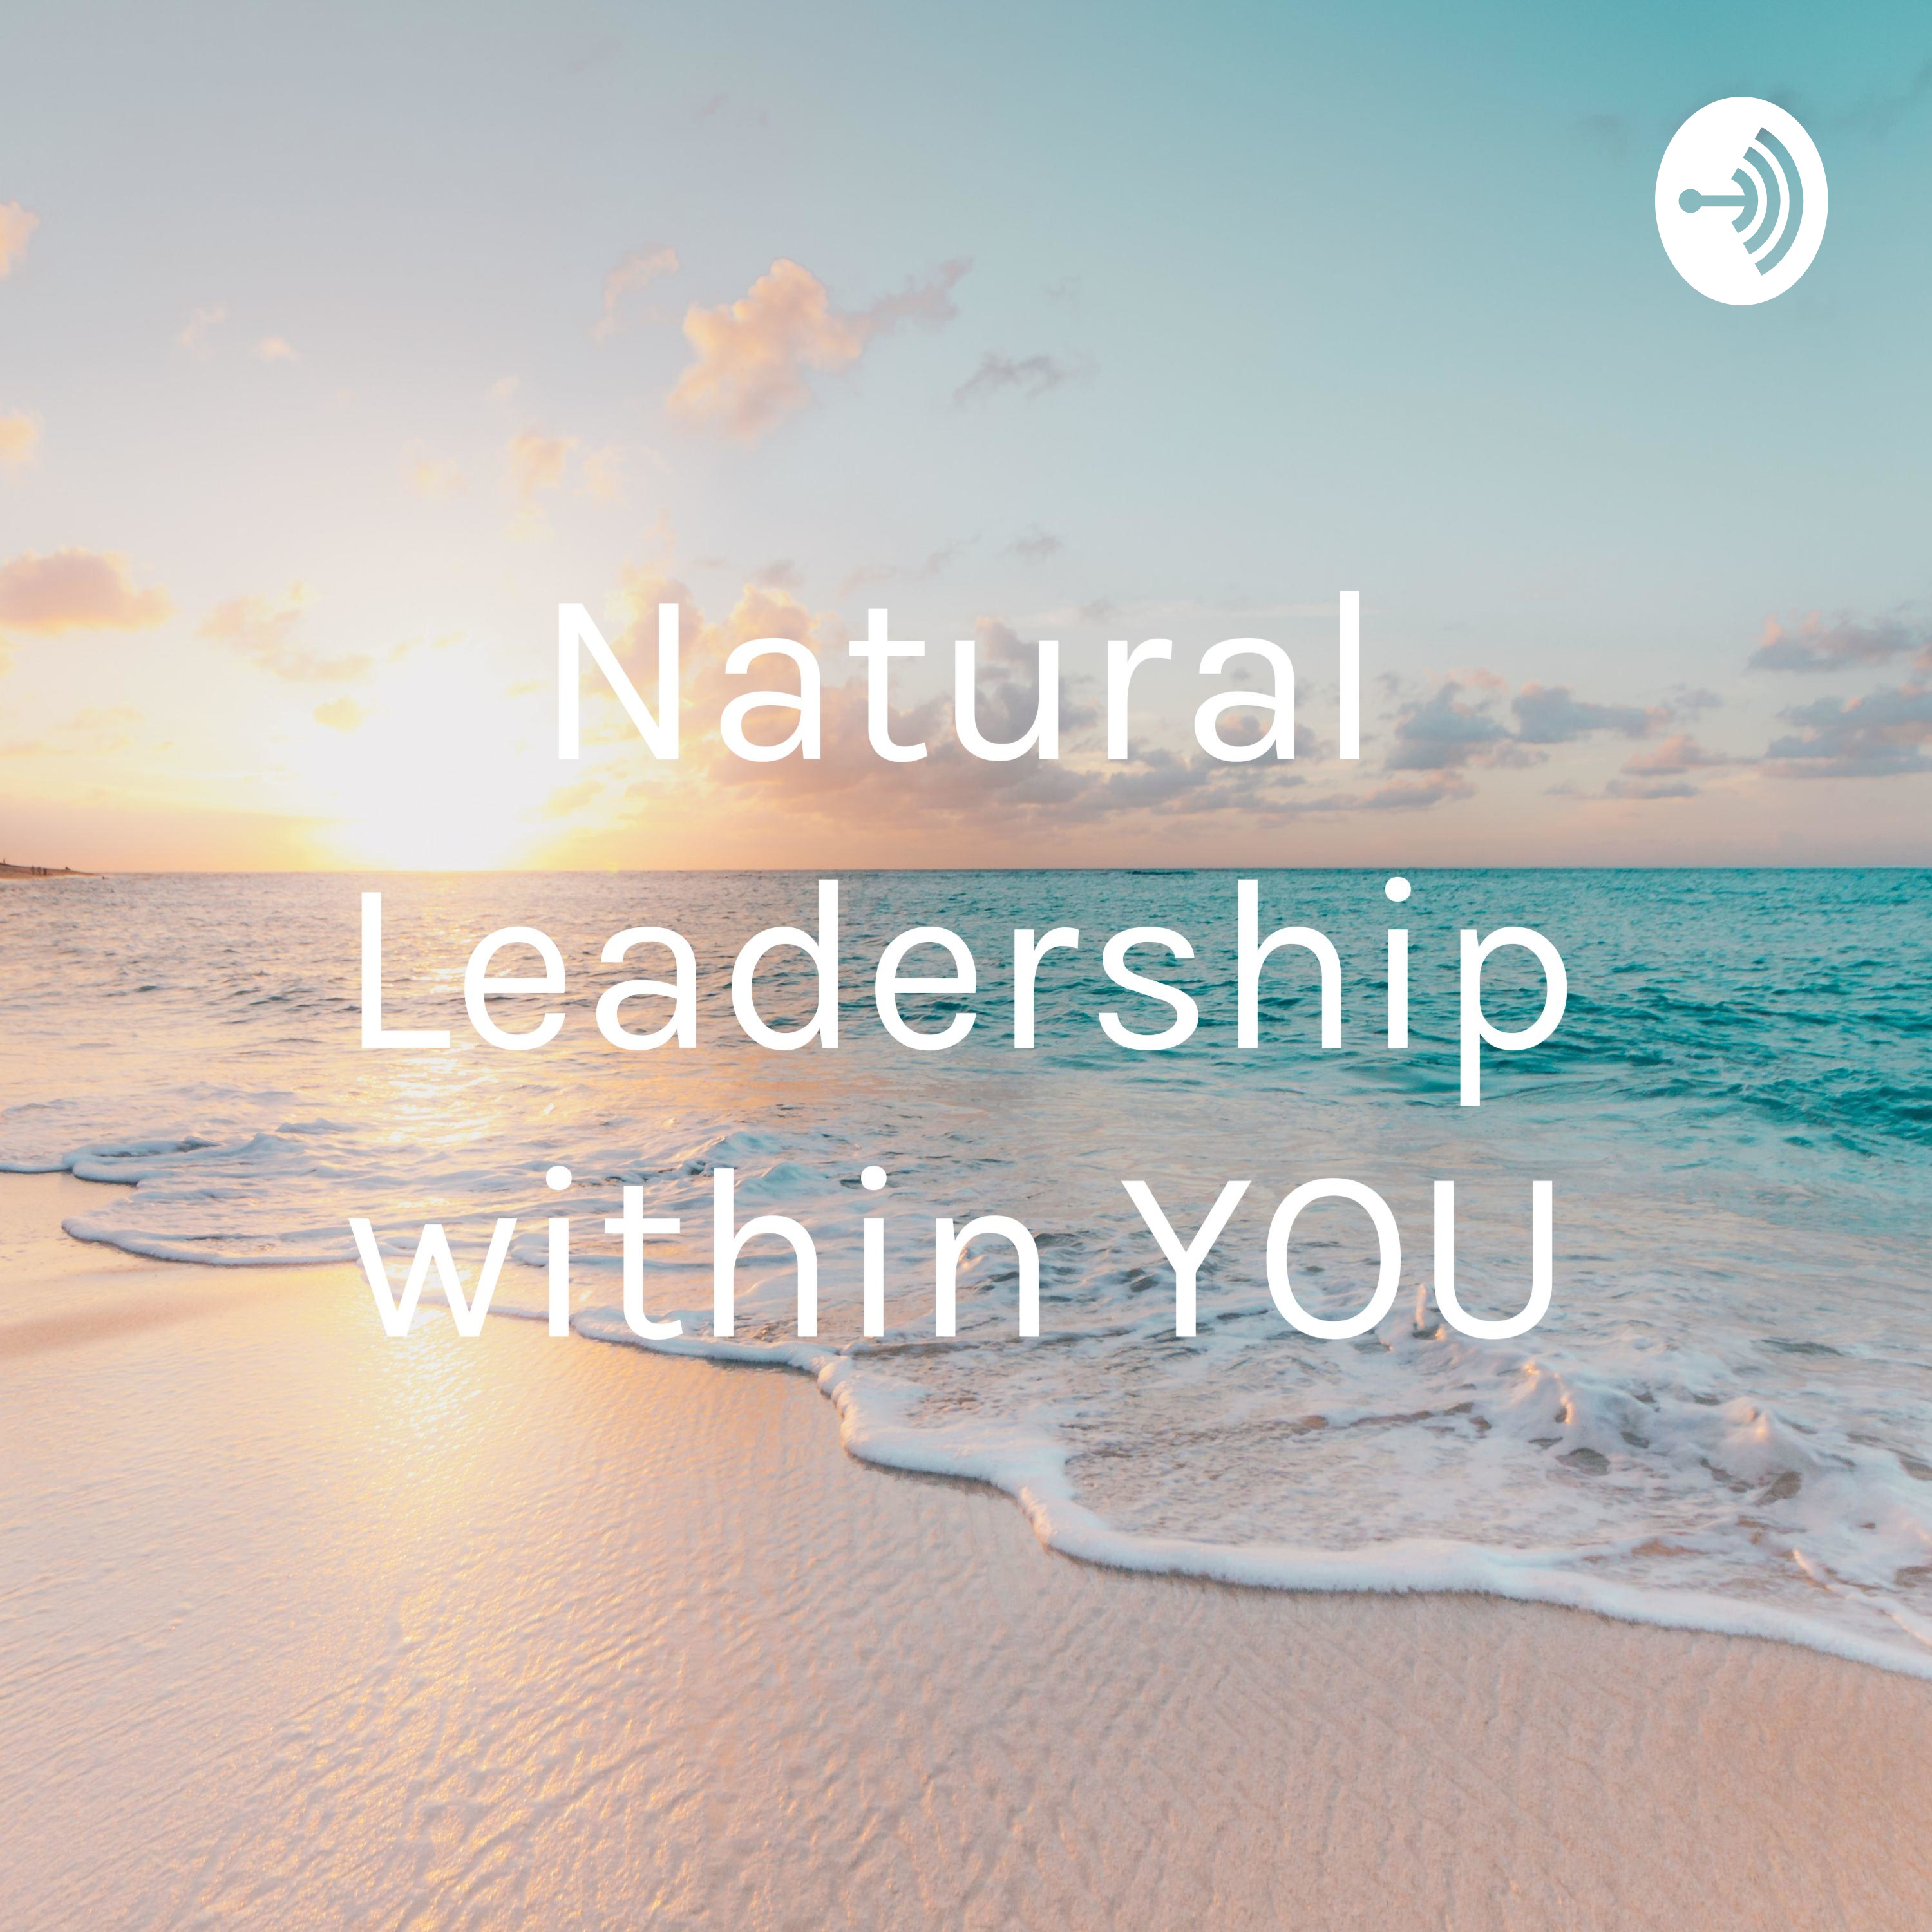 Natural Leadership within YOU